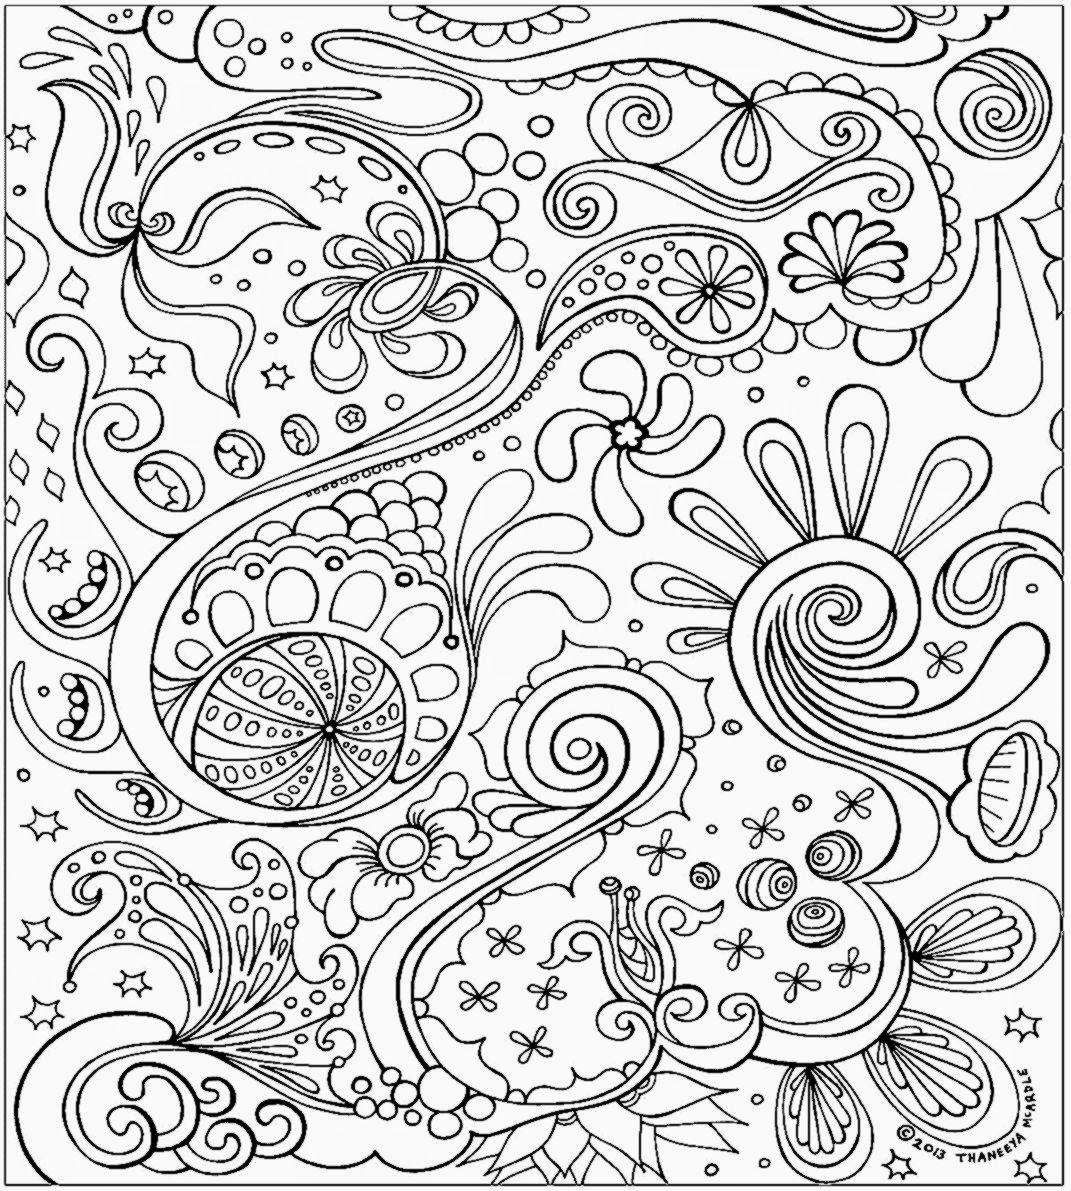 1071x1191 Stress Coloring Pages To Download And Print For Free